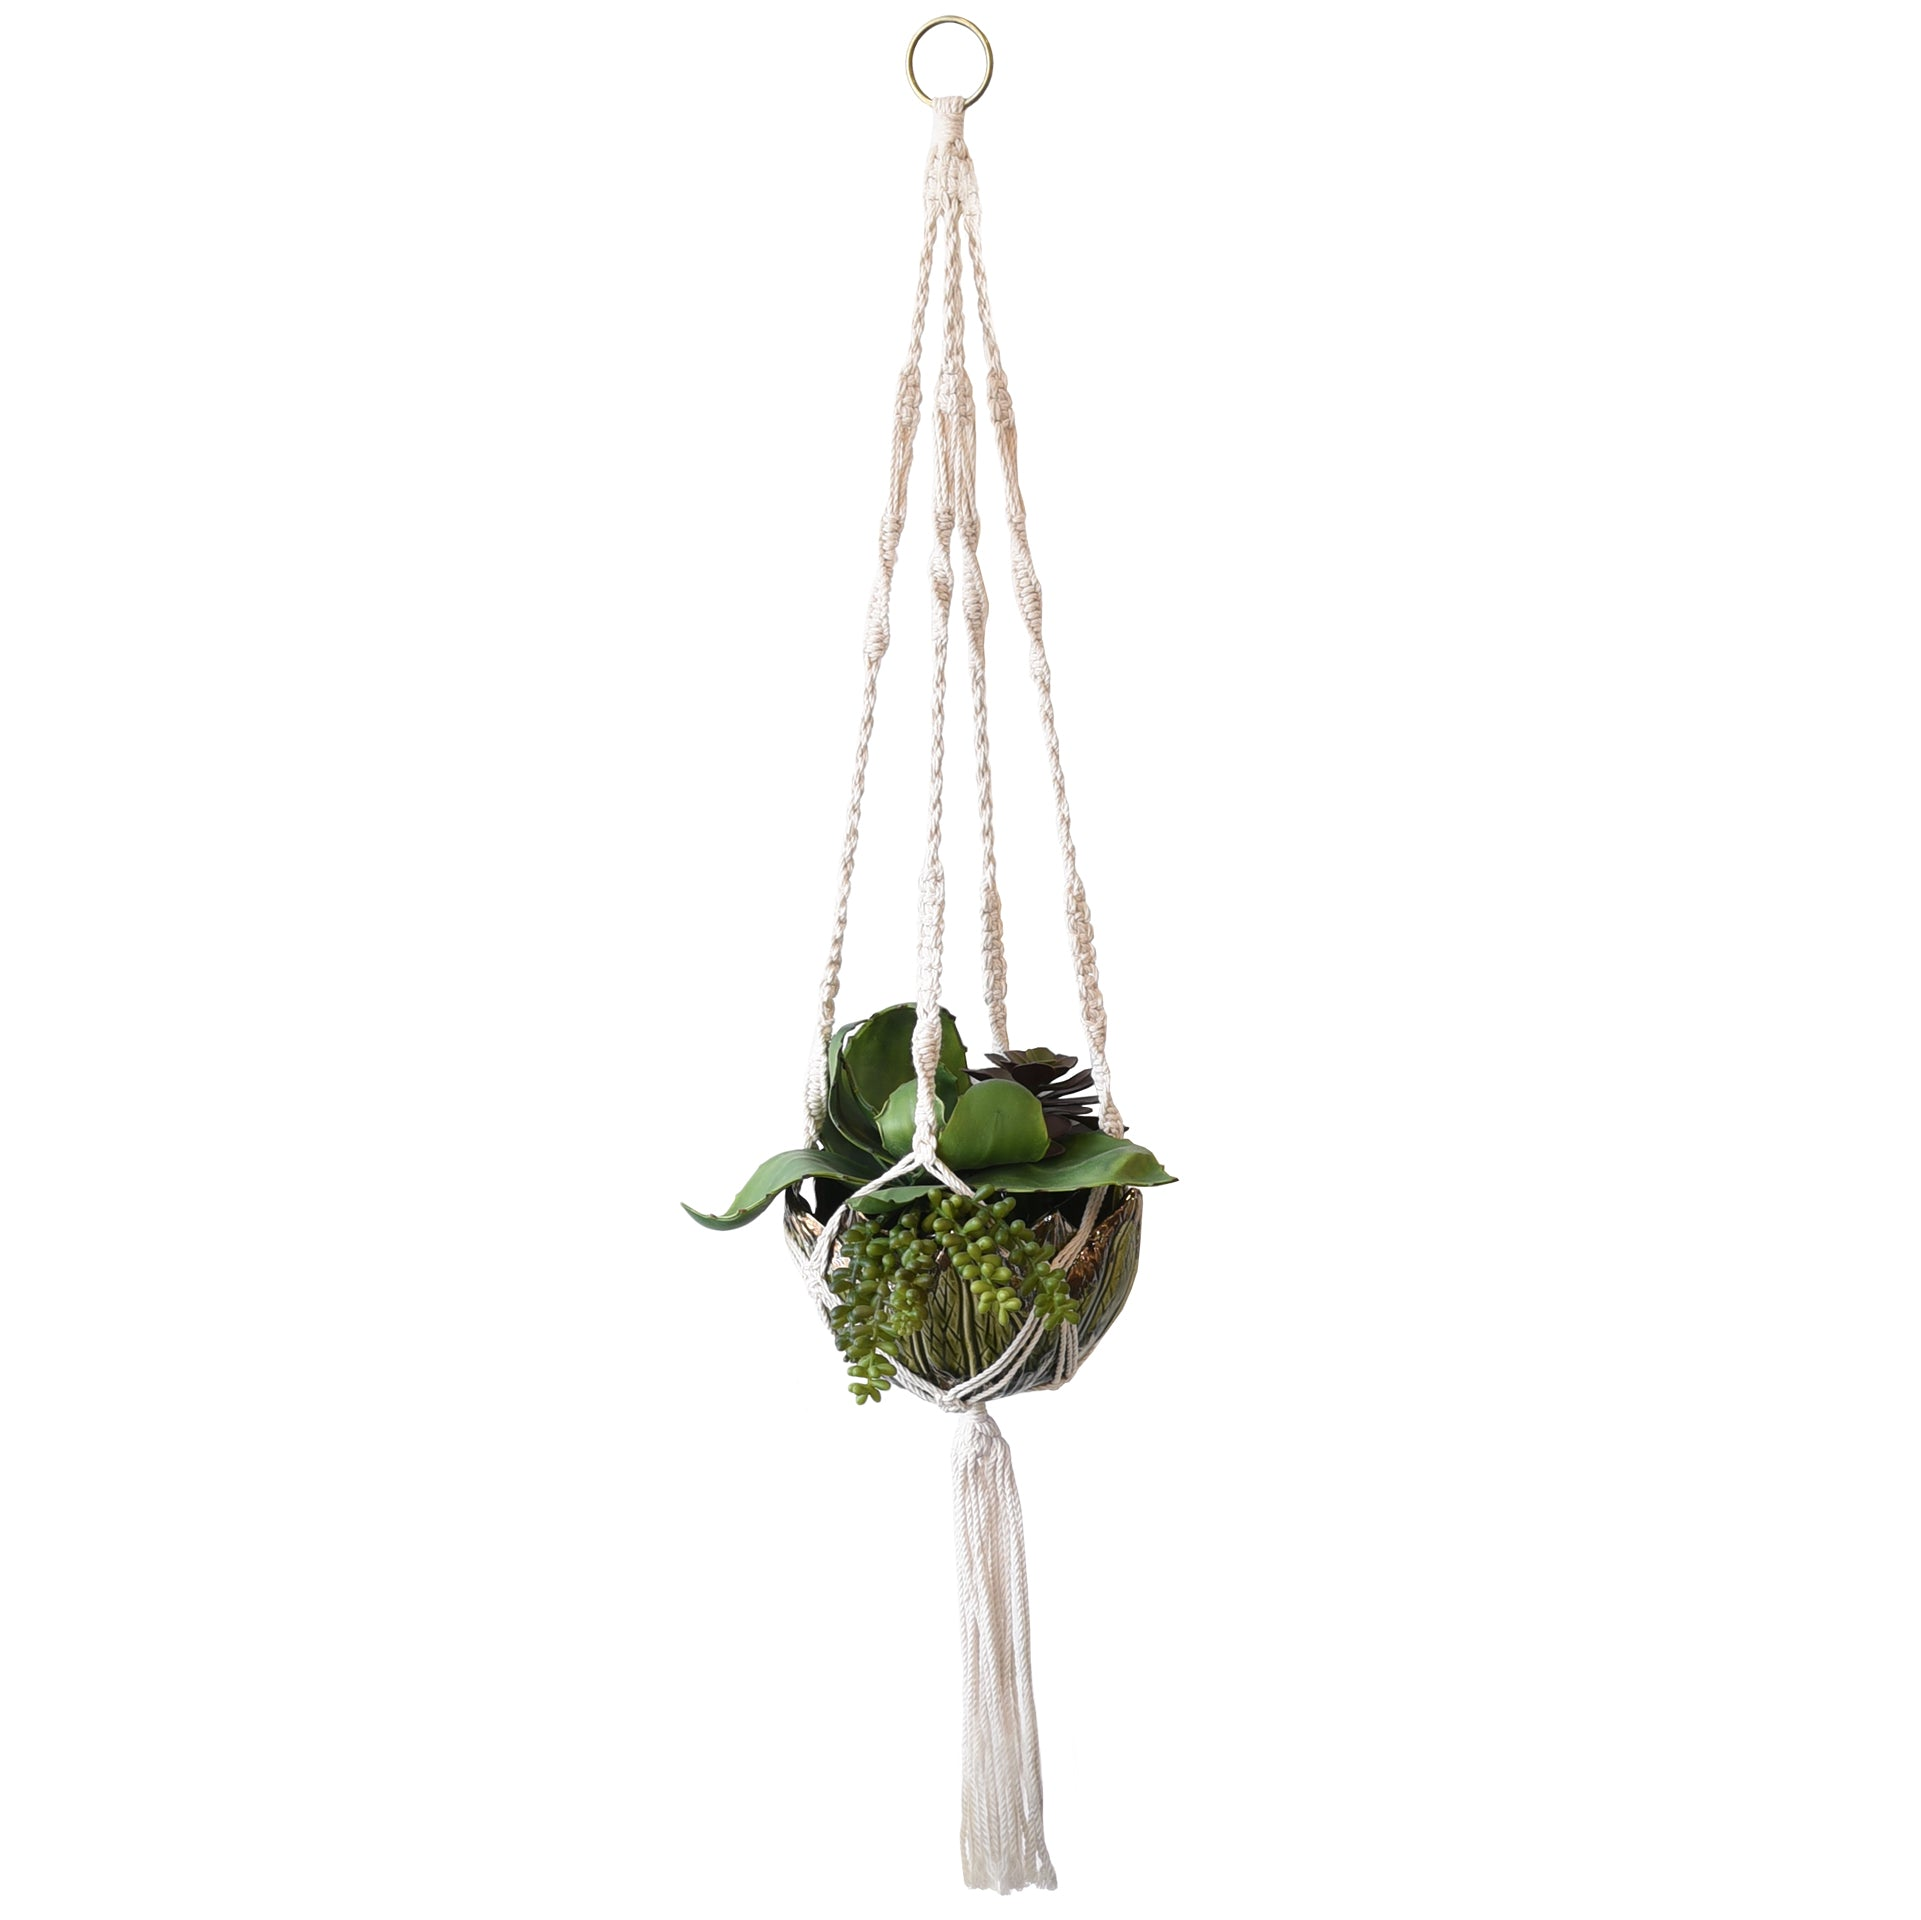 Hanging Modern Boho Macrame Planter With Ceramic Leaf Pot